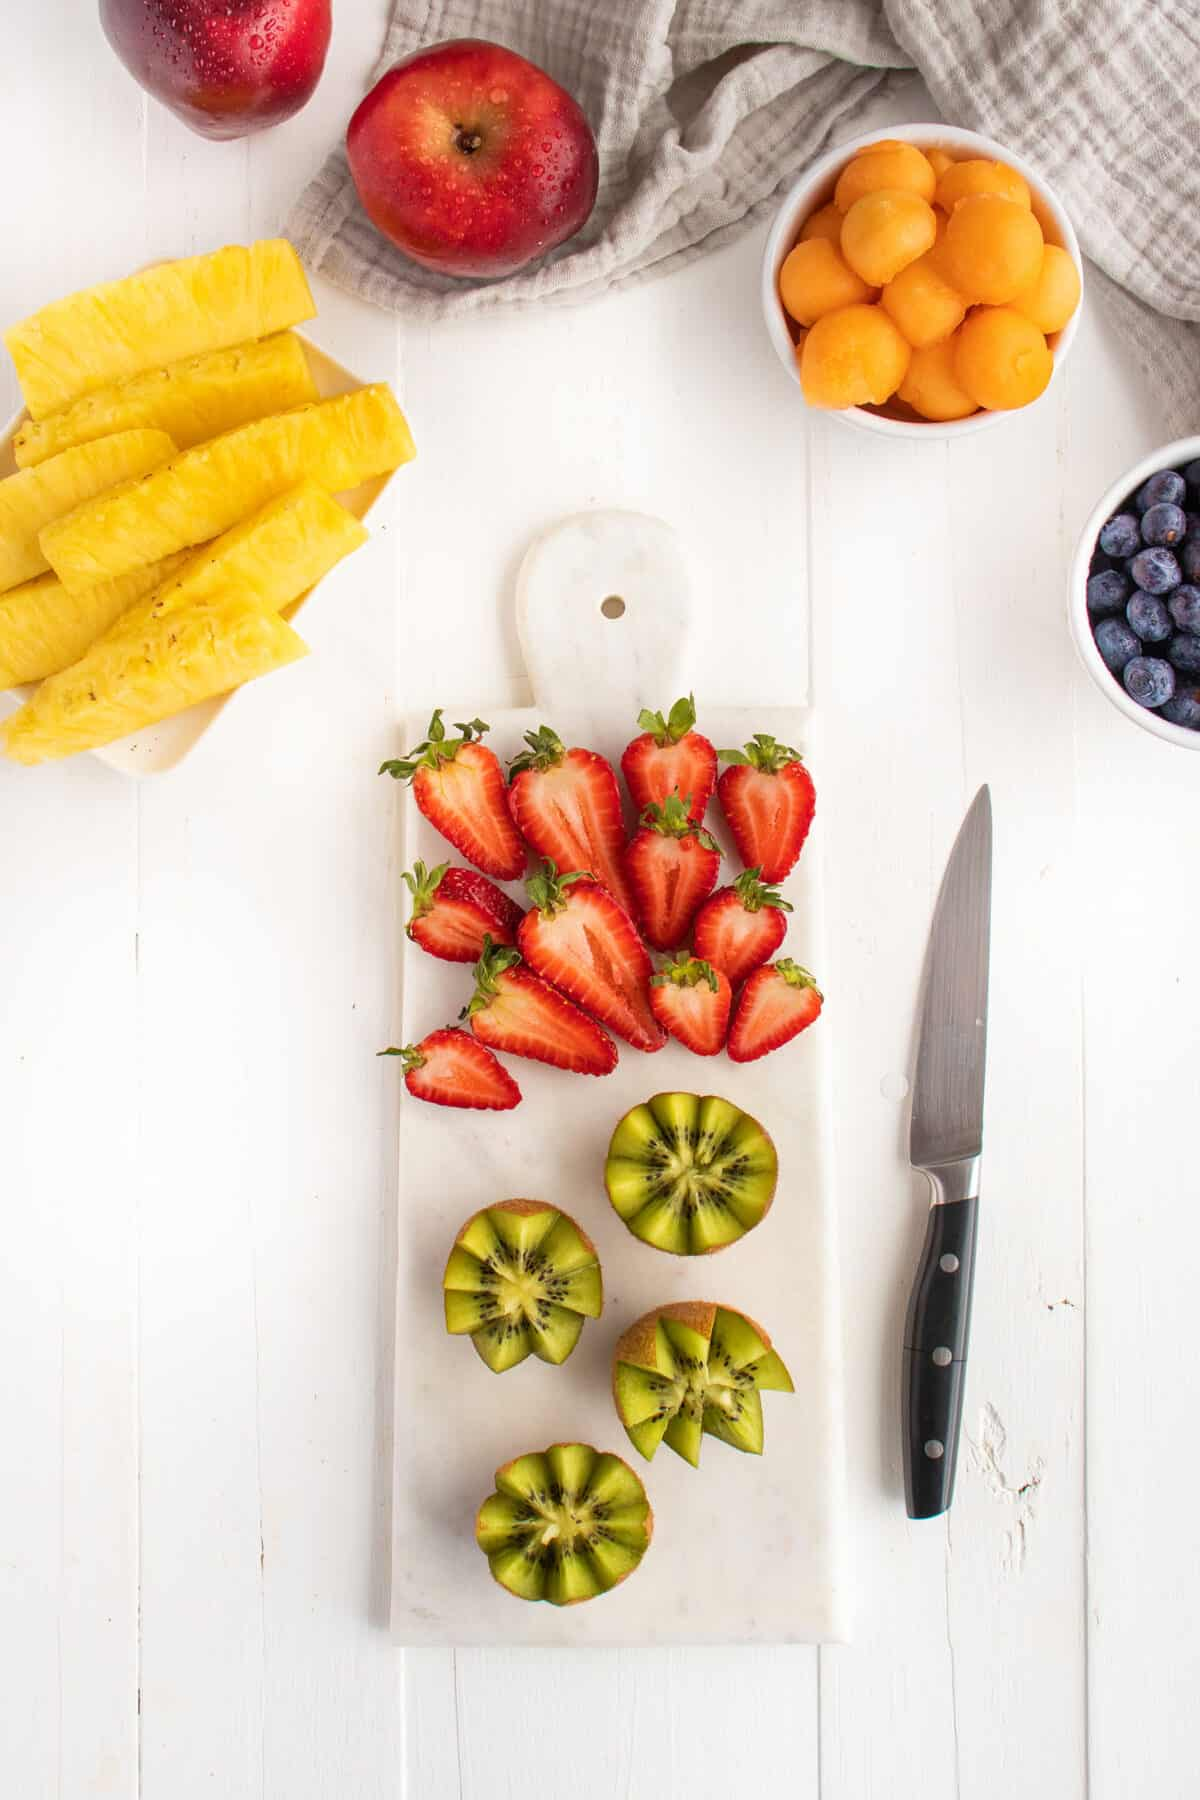 strawberries and kiwis with a knife on a white board